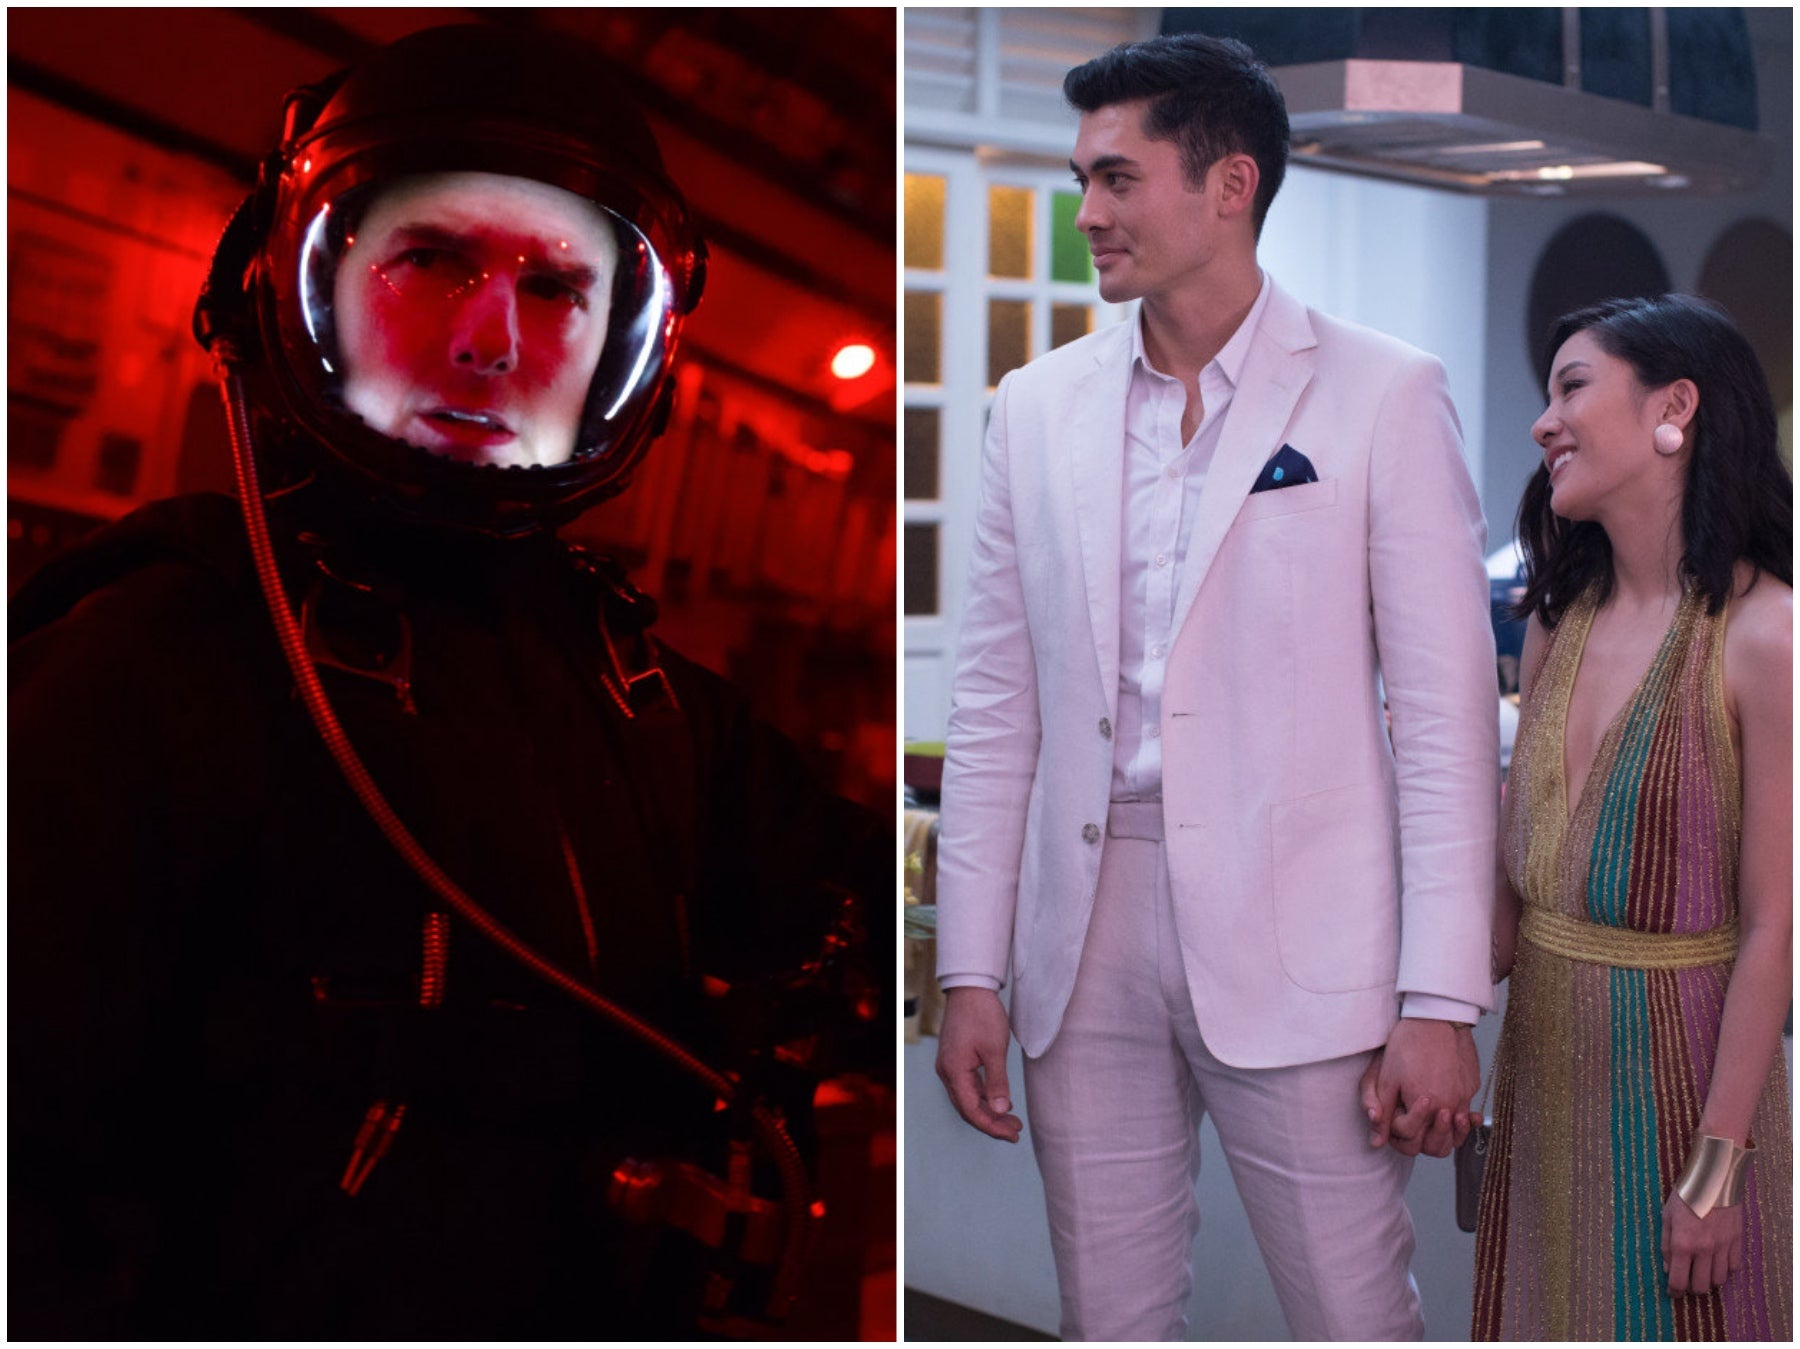 Scenes from Mission Impossible:Fallout and Crazy Rich Asians